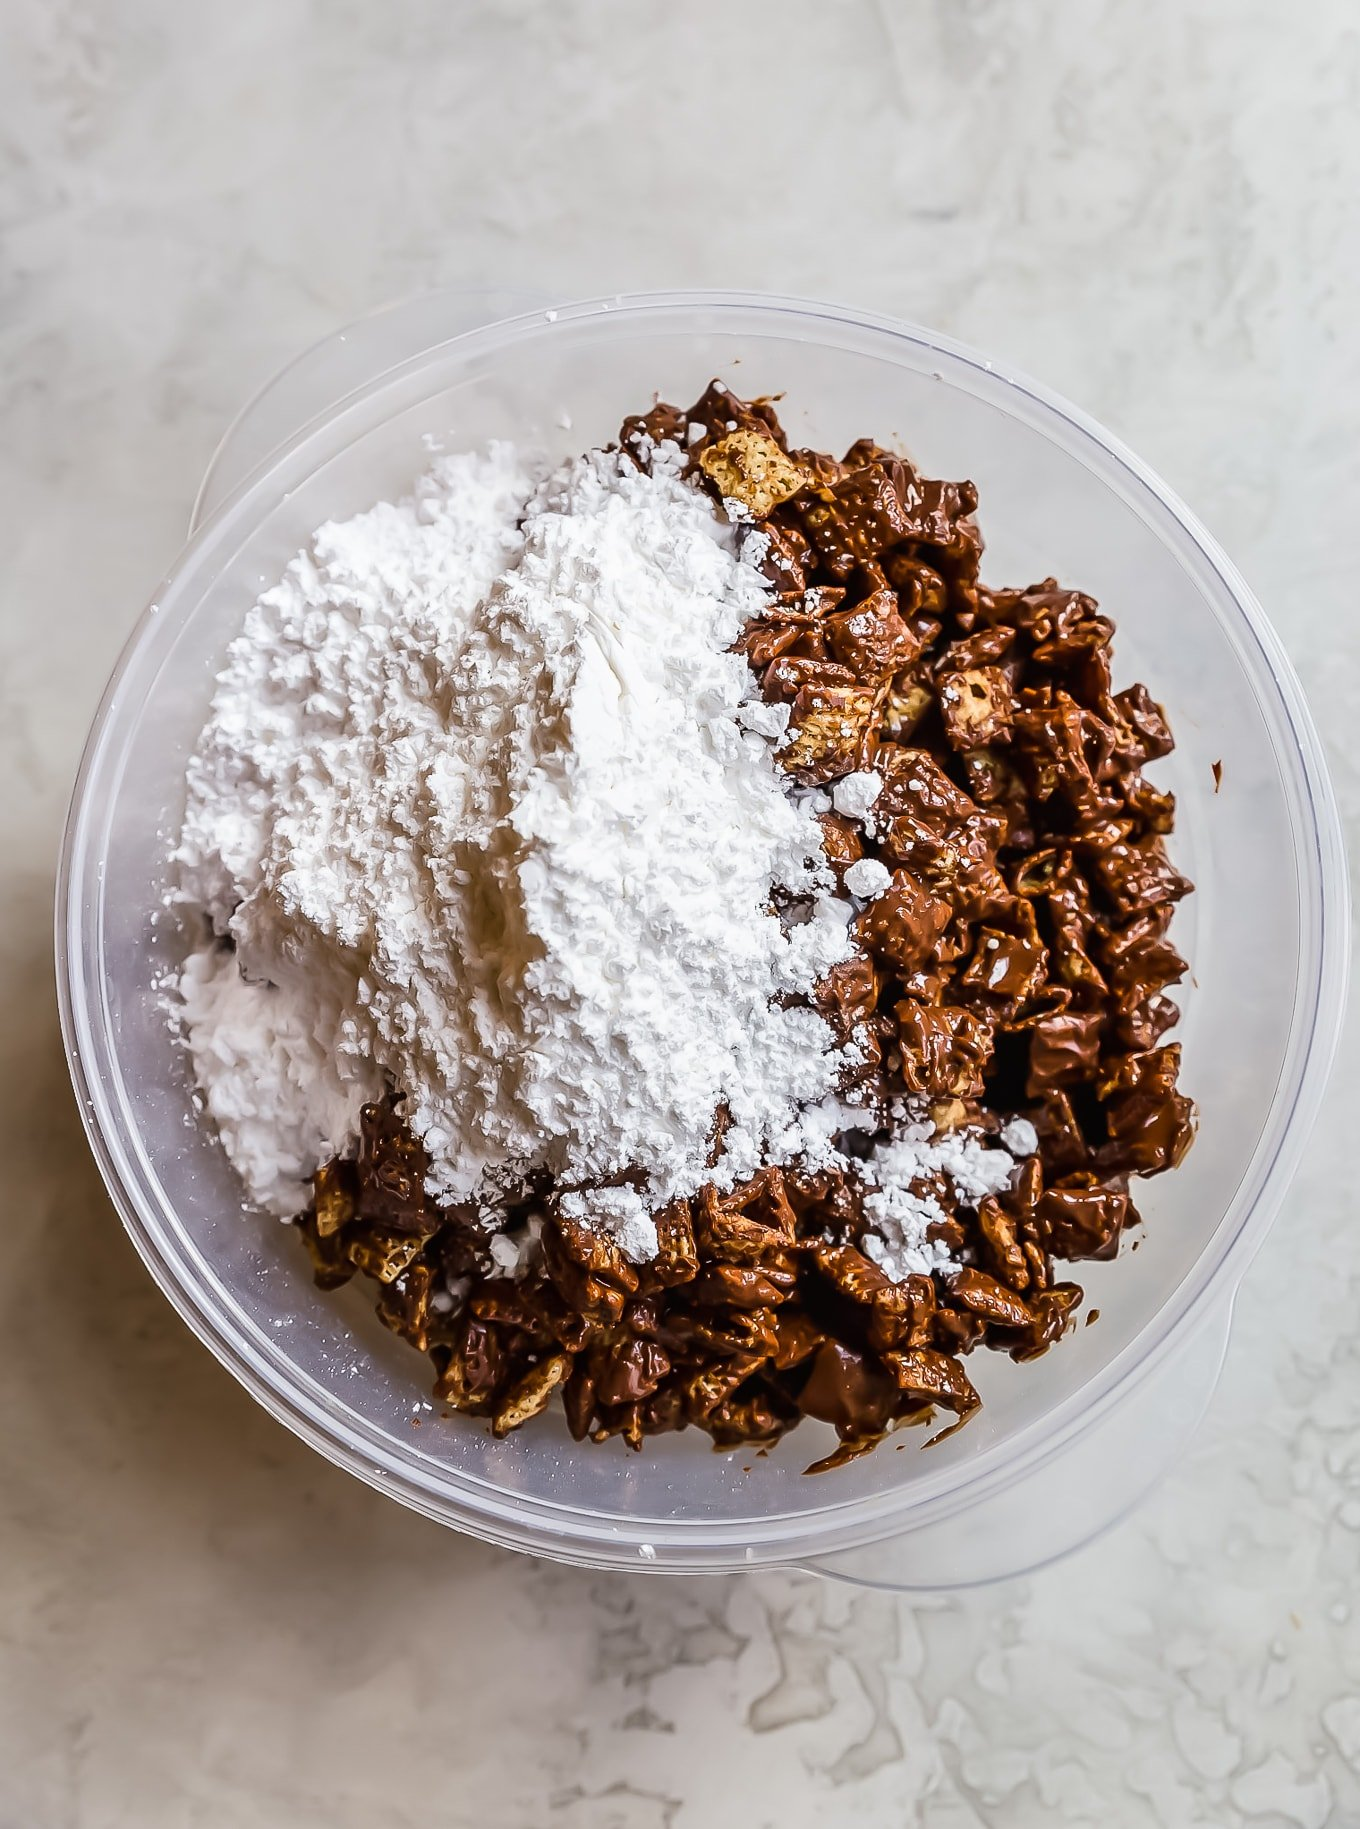 crispix cereal, chocolate, and powdered sugar in a mixing bowl